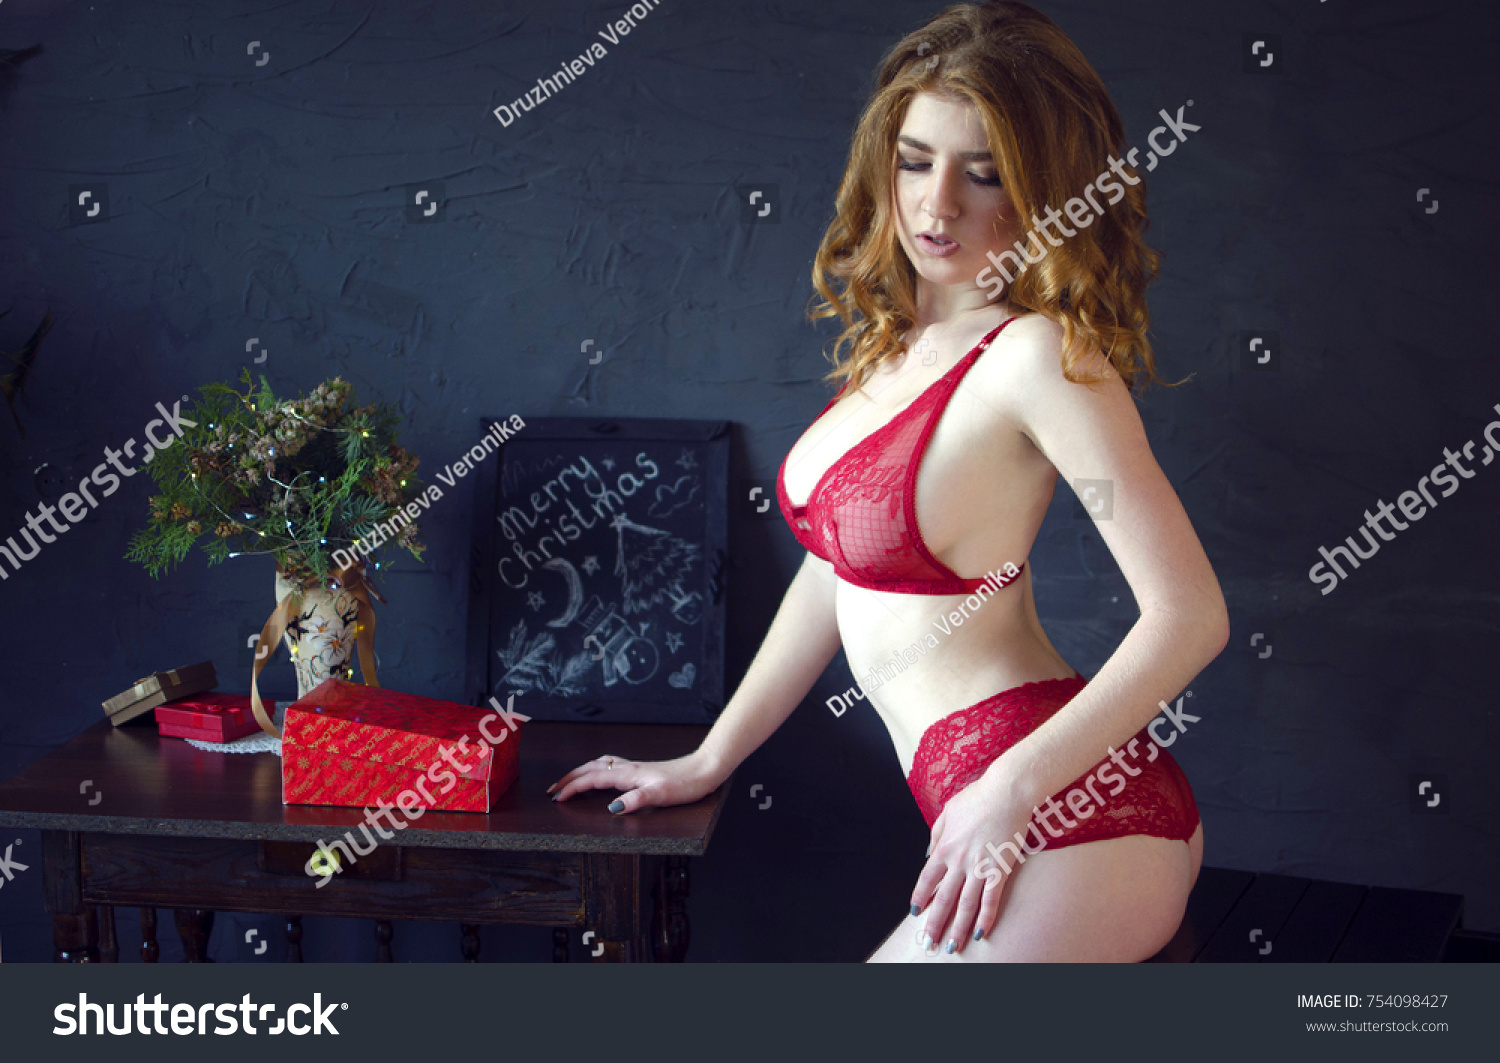 ba481a33100 Young redhead beautiful woman in red lace lingerie on the black wall  background